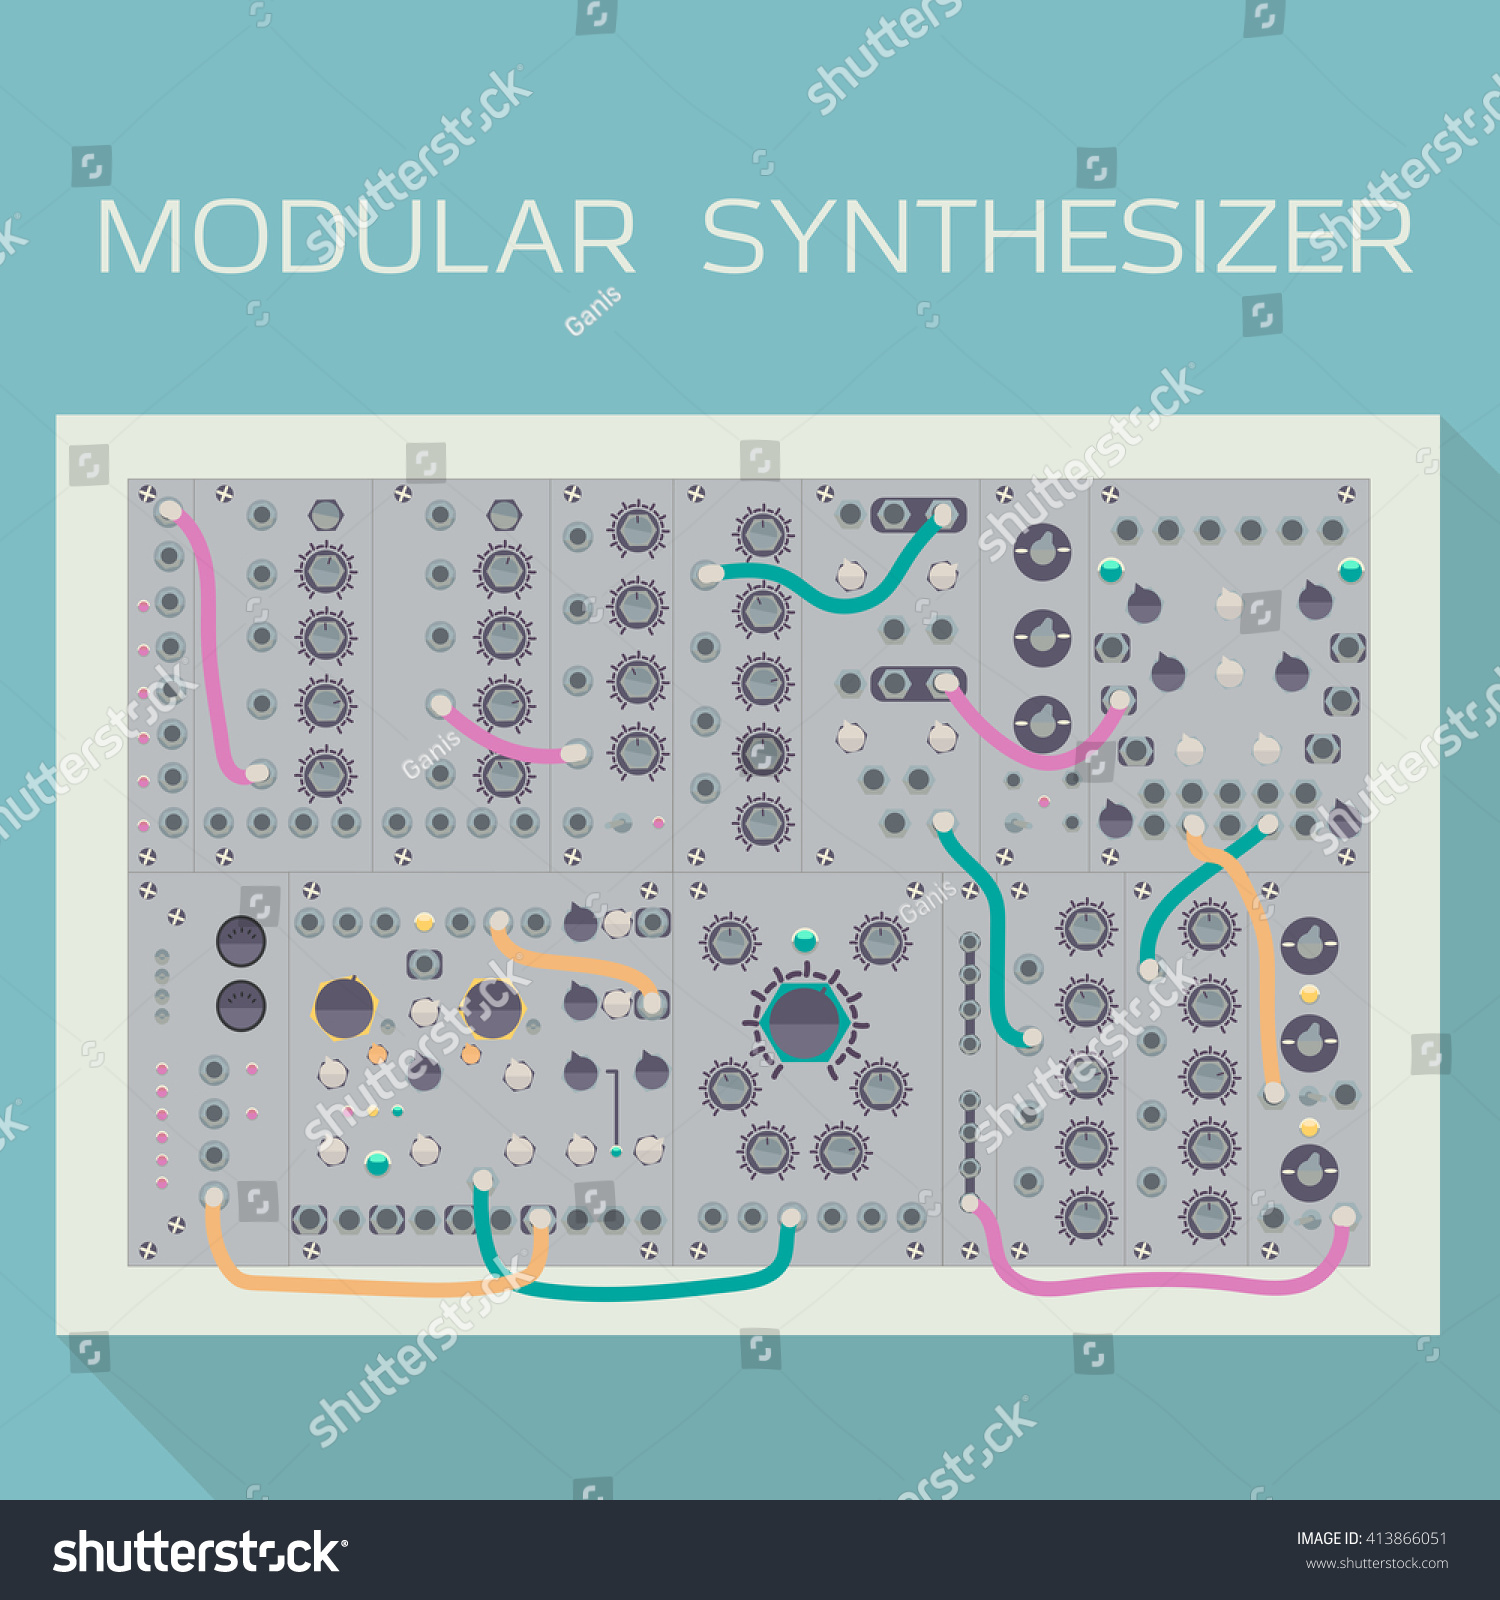 Limited Edition Modular Synthesizer Wires Vector Stock Wiring Diagram Of With Illustration